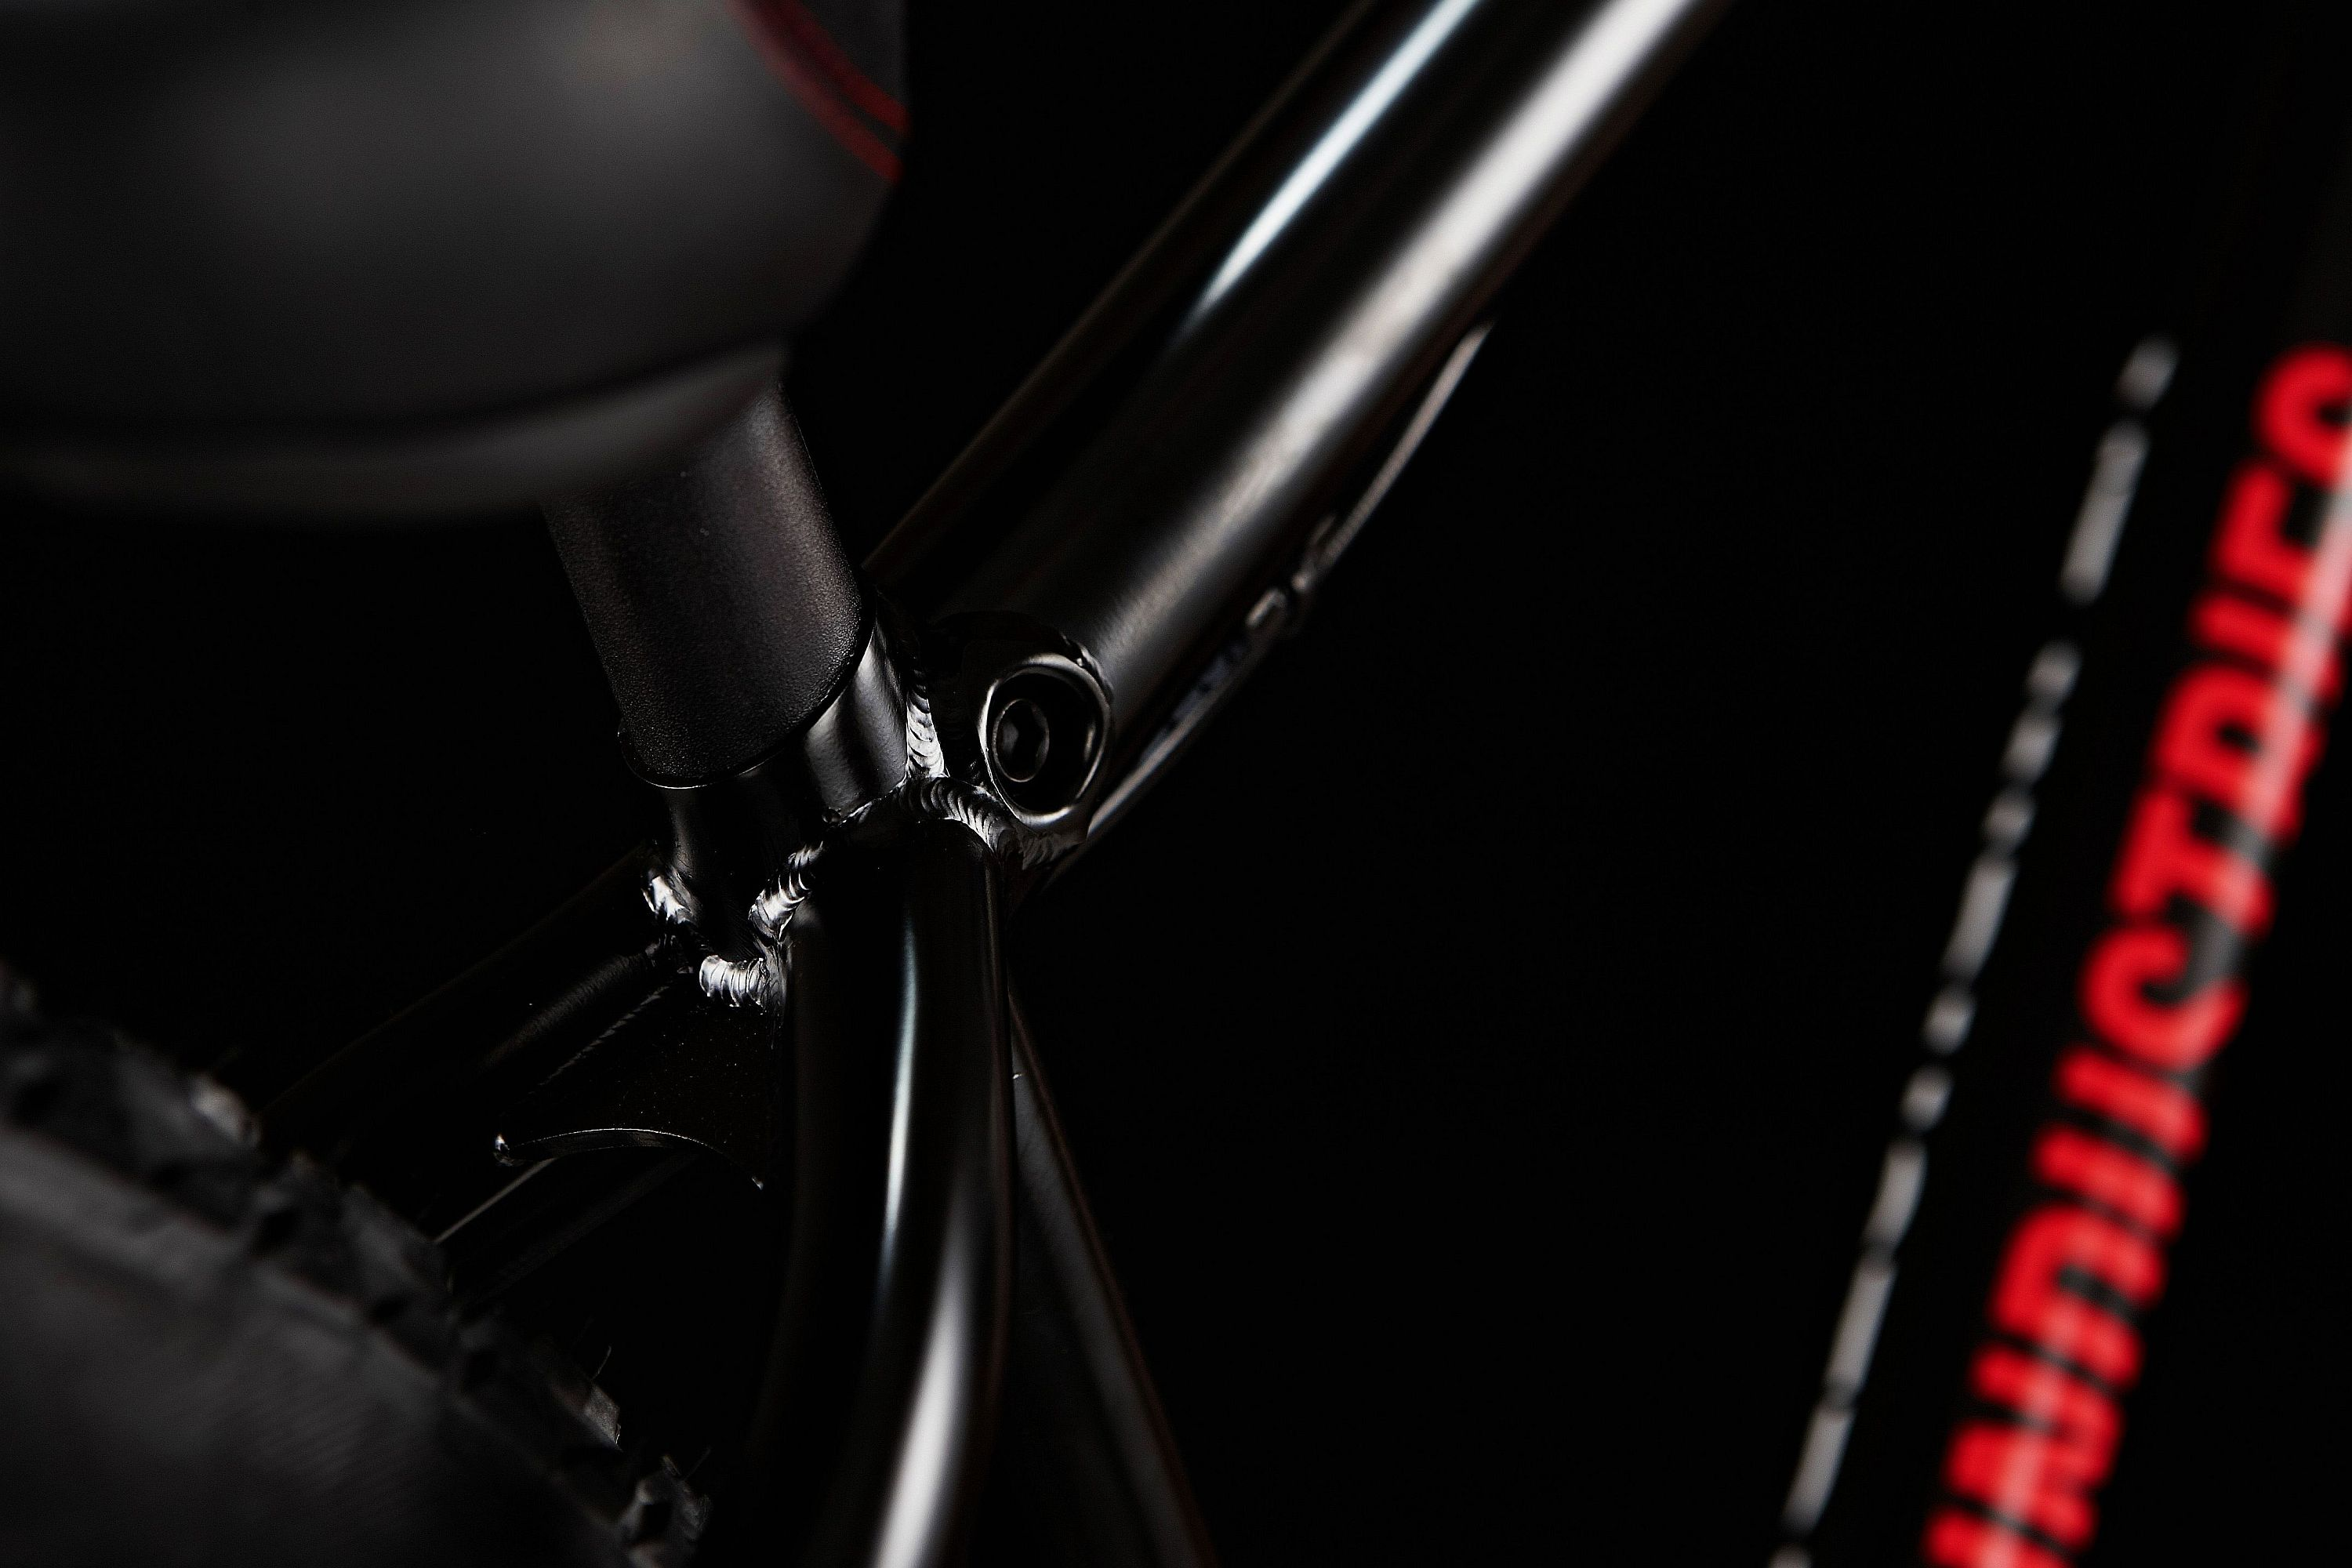 YT_Dirt_Love_Andreu_Signature_Integrated_Seatpost_Clamp